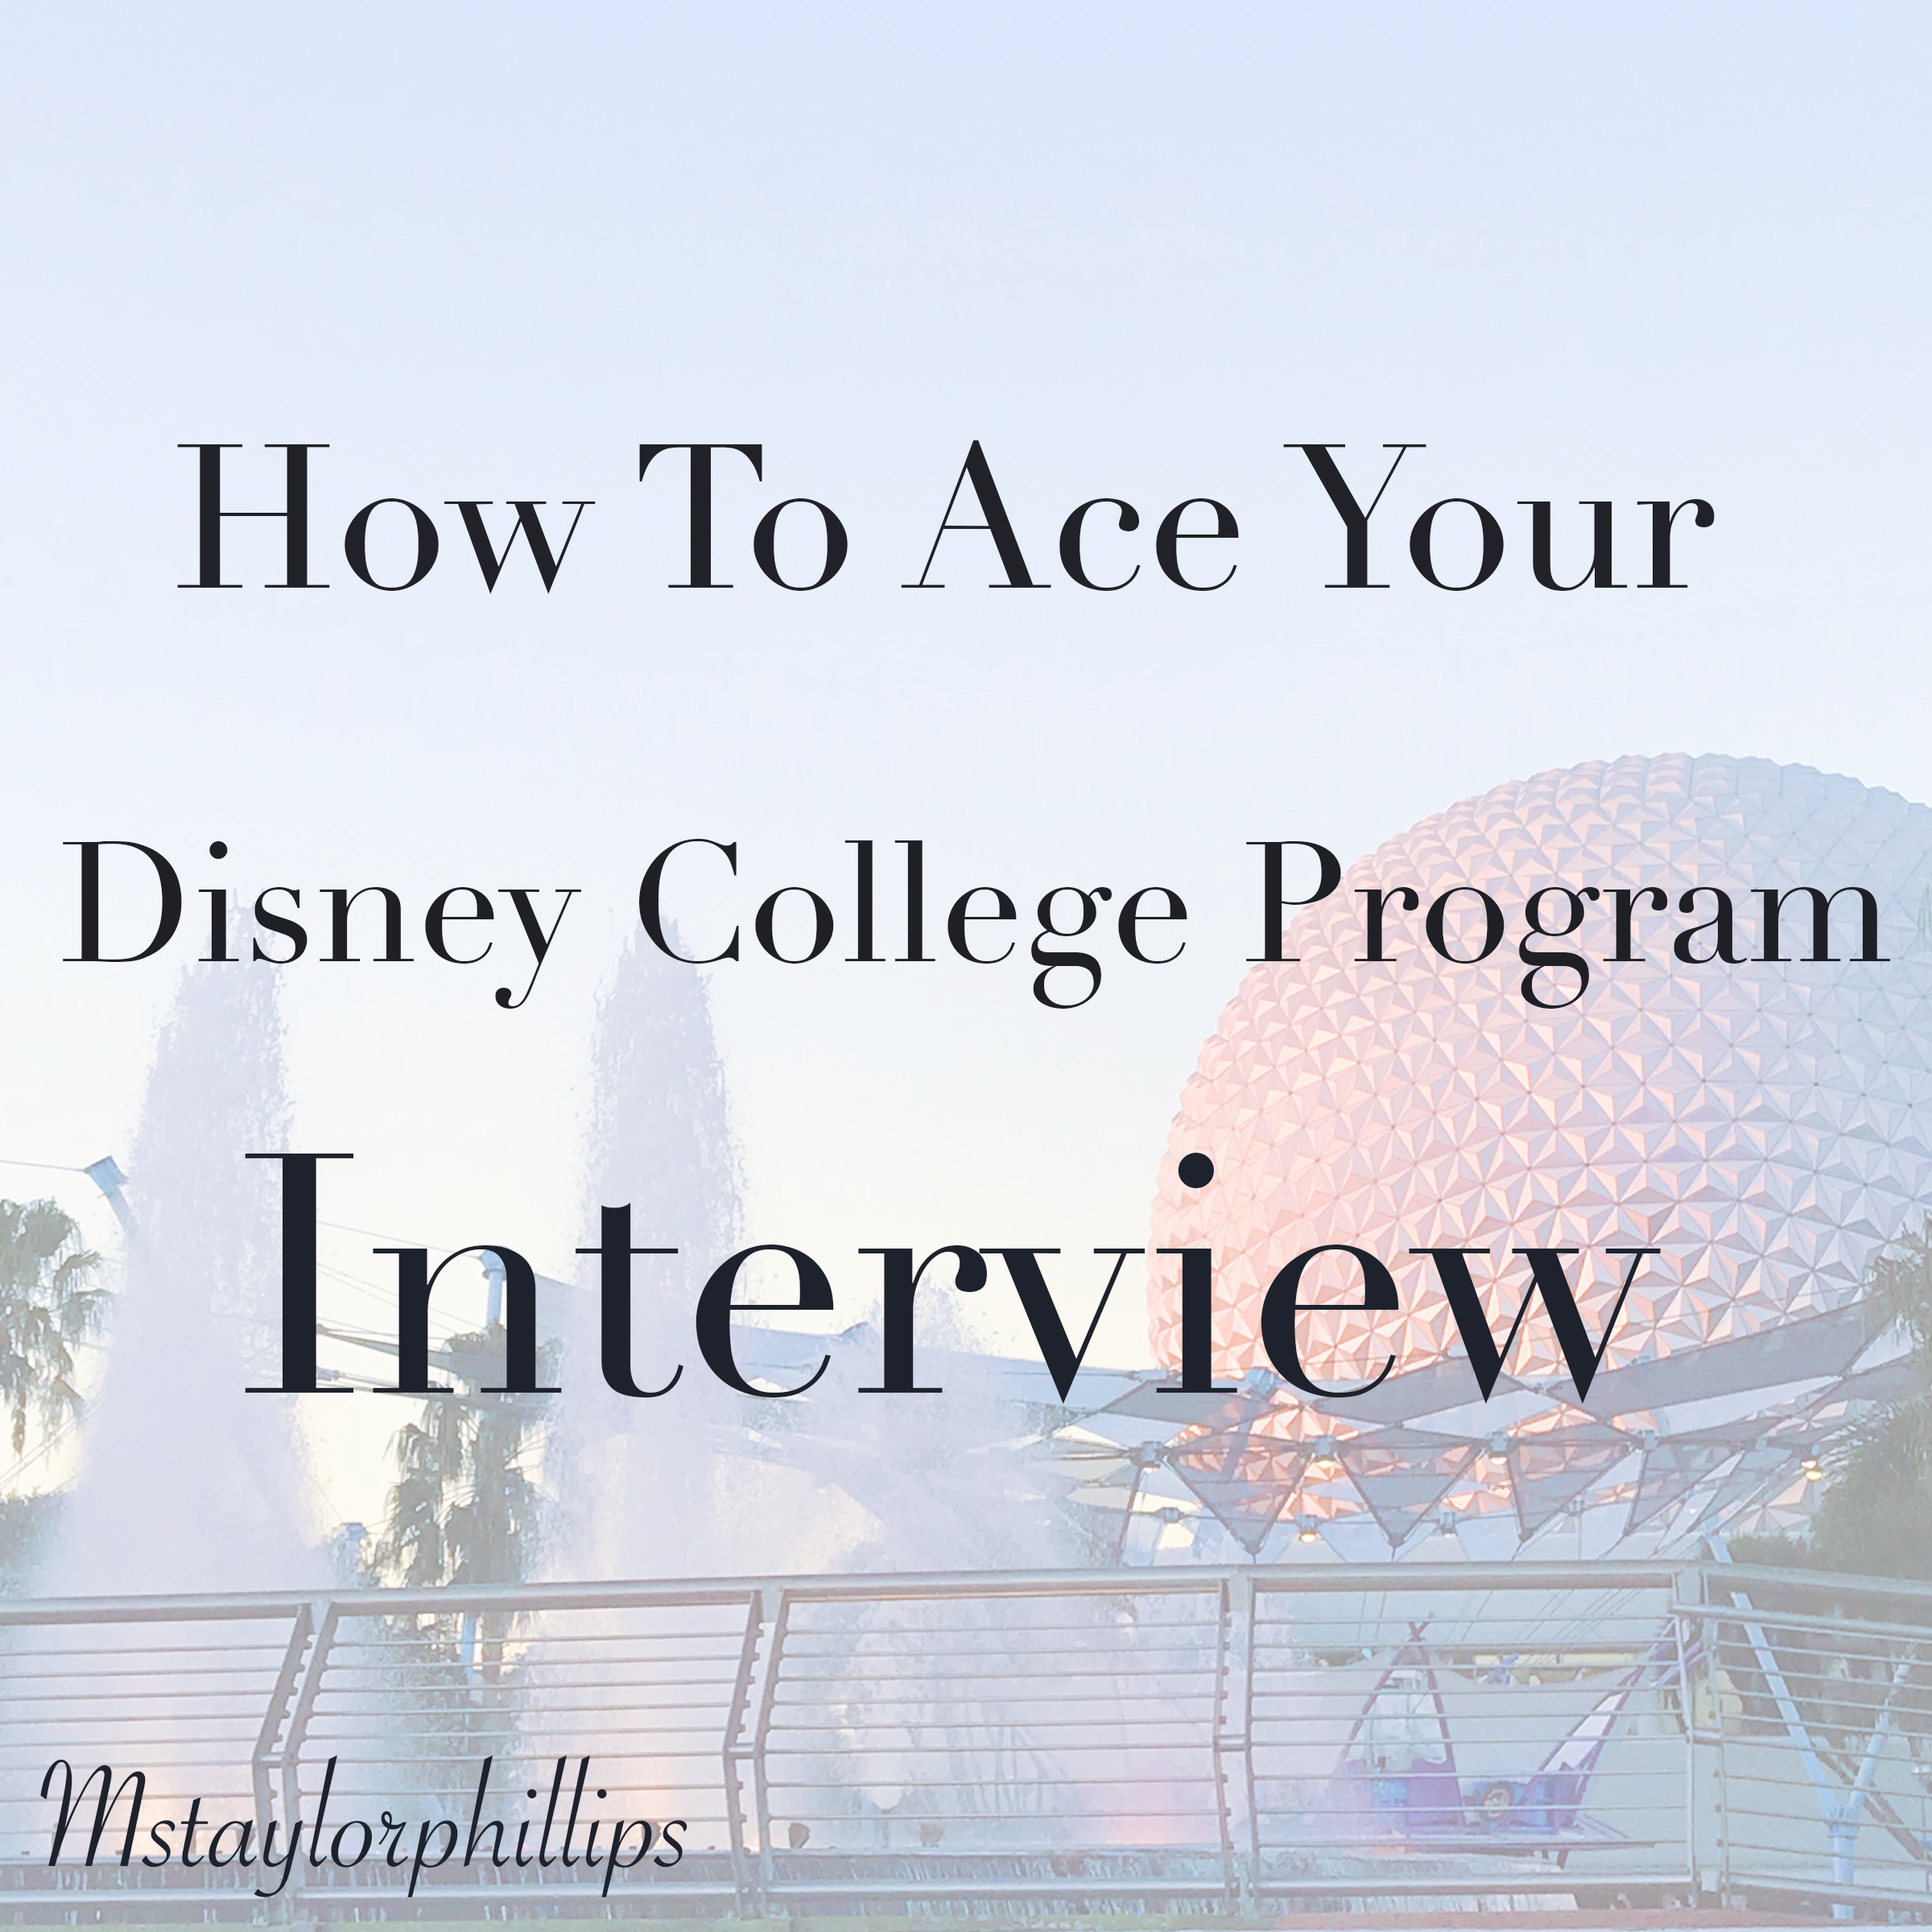 How To Ace Your Disney College Program Interview